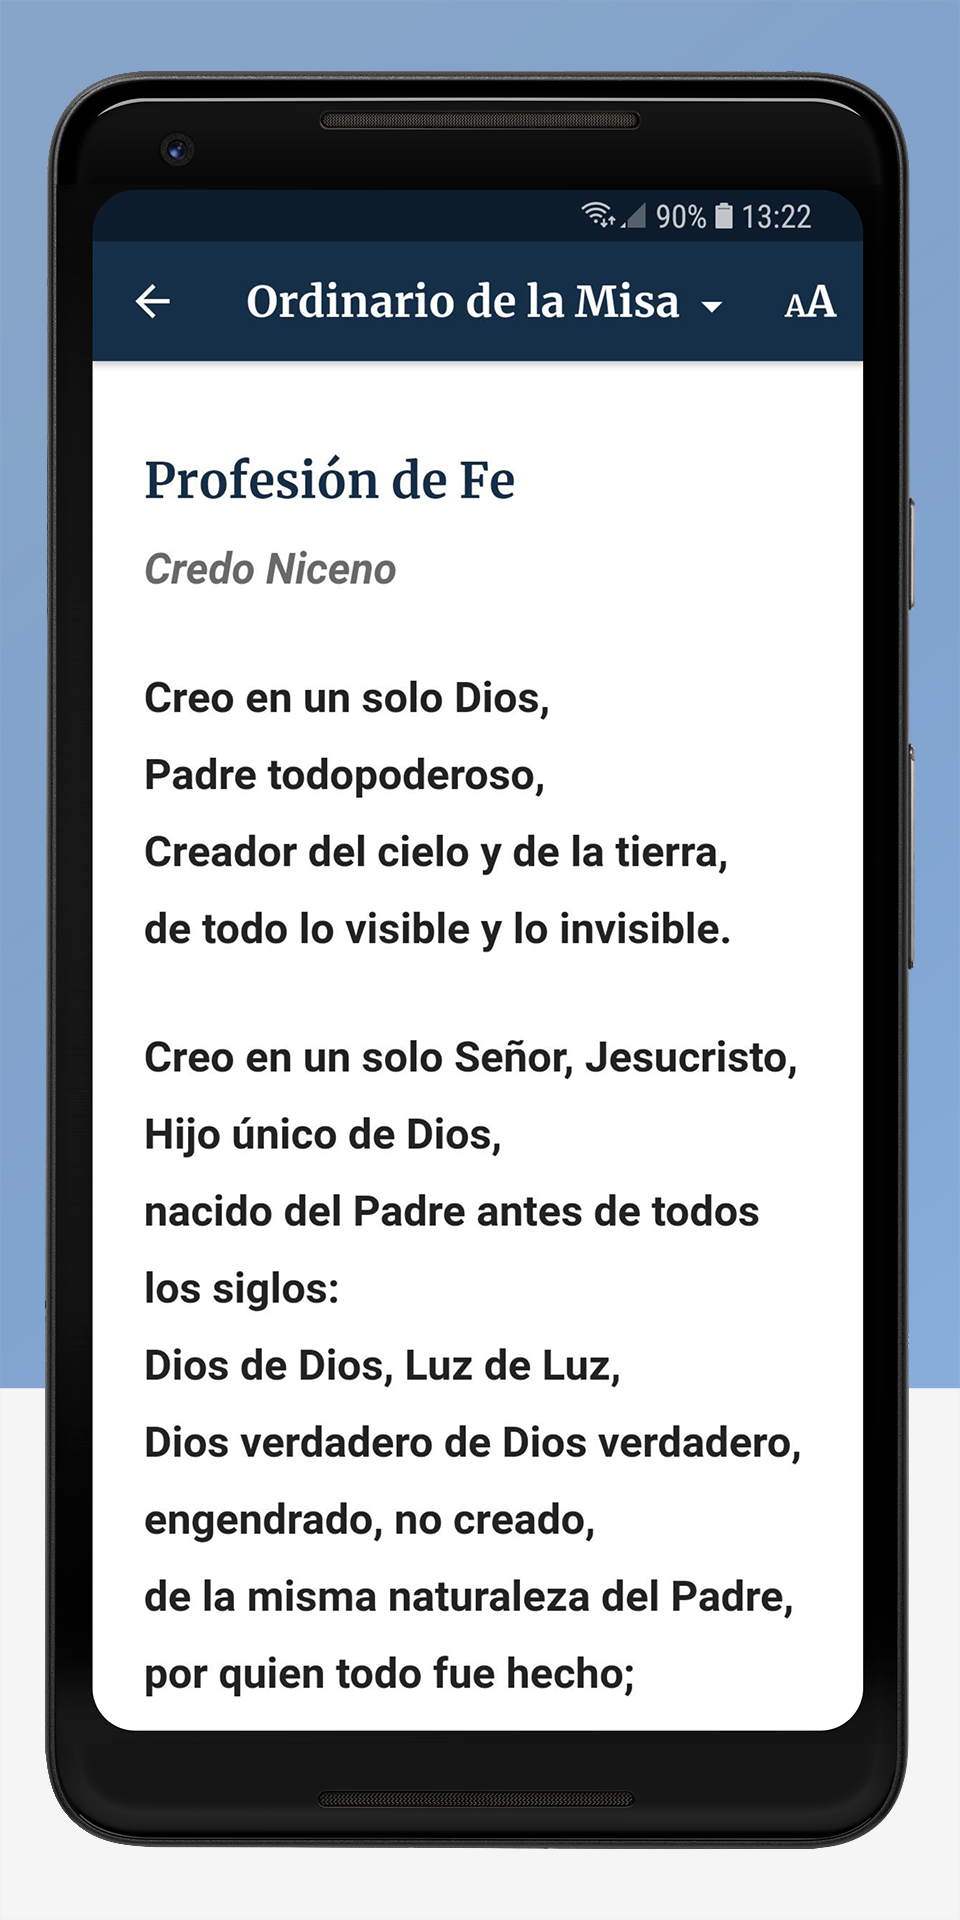 The Word Among Us Android App - Order of Mass Screen